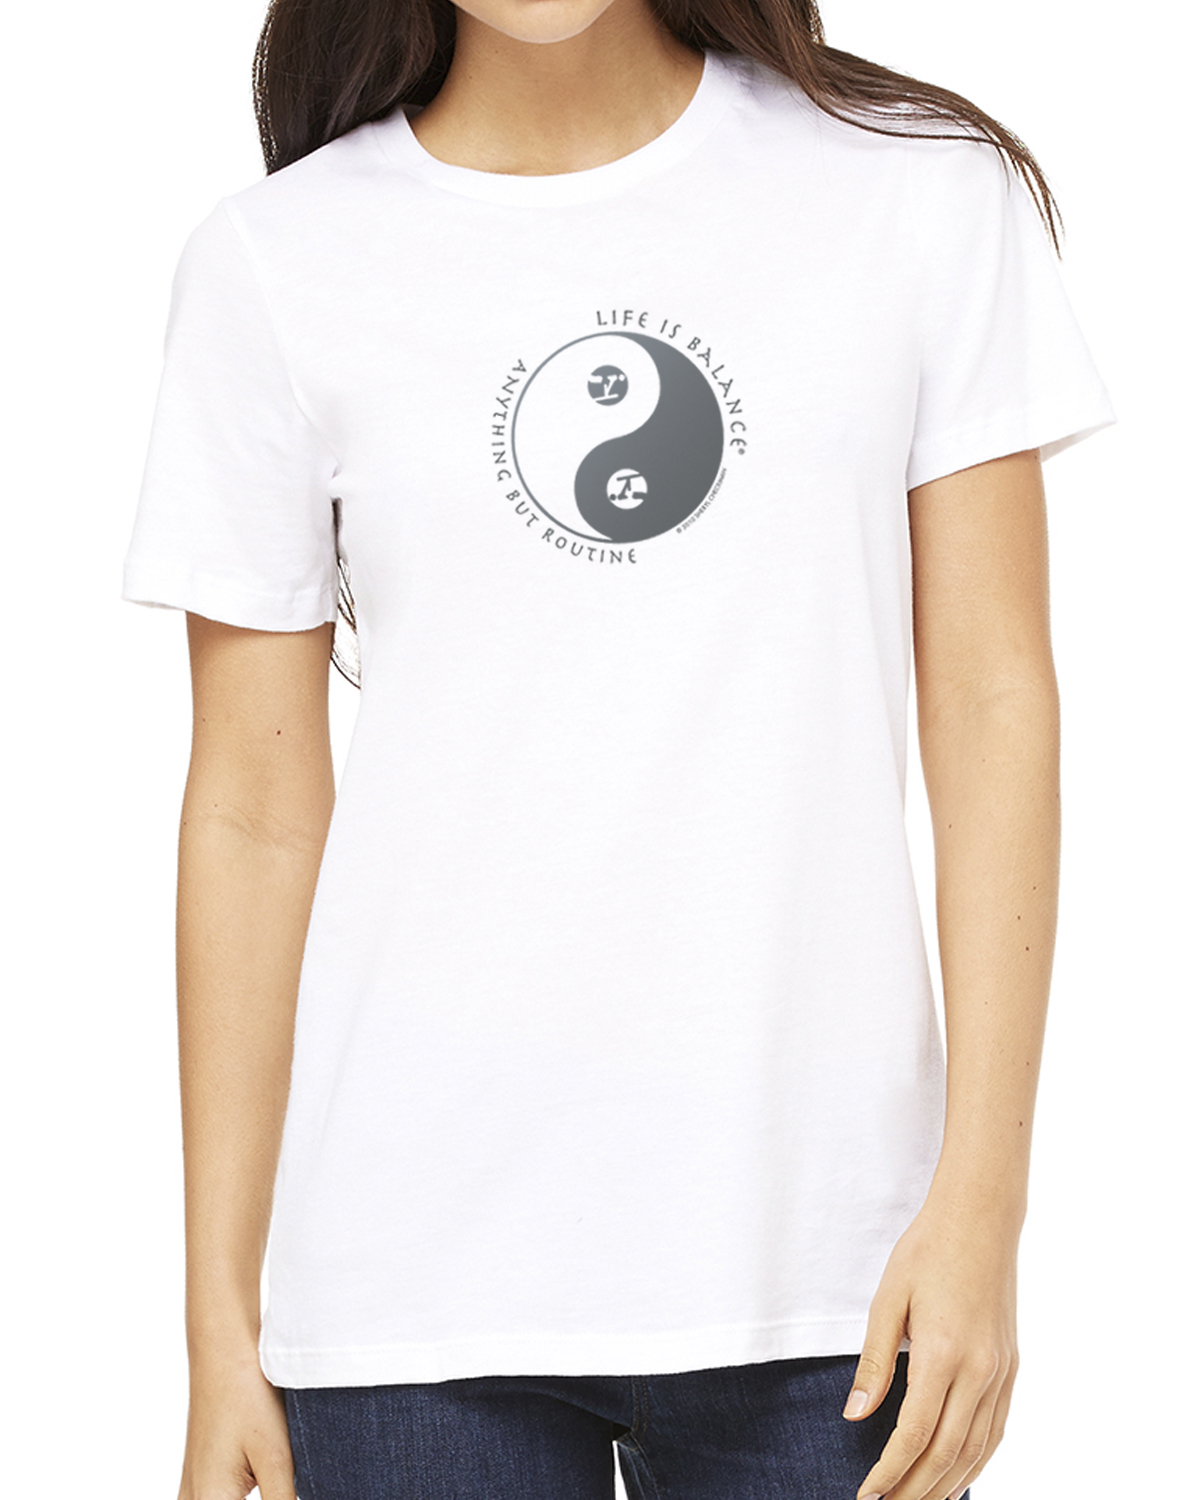 Women's short sleeve gymnastics t-shirt (white)